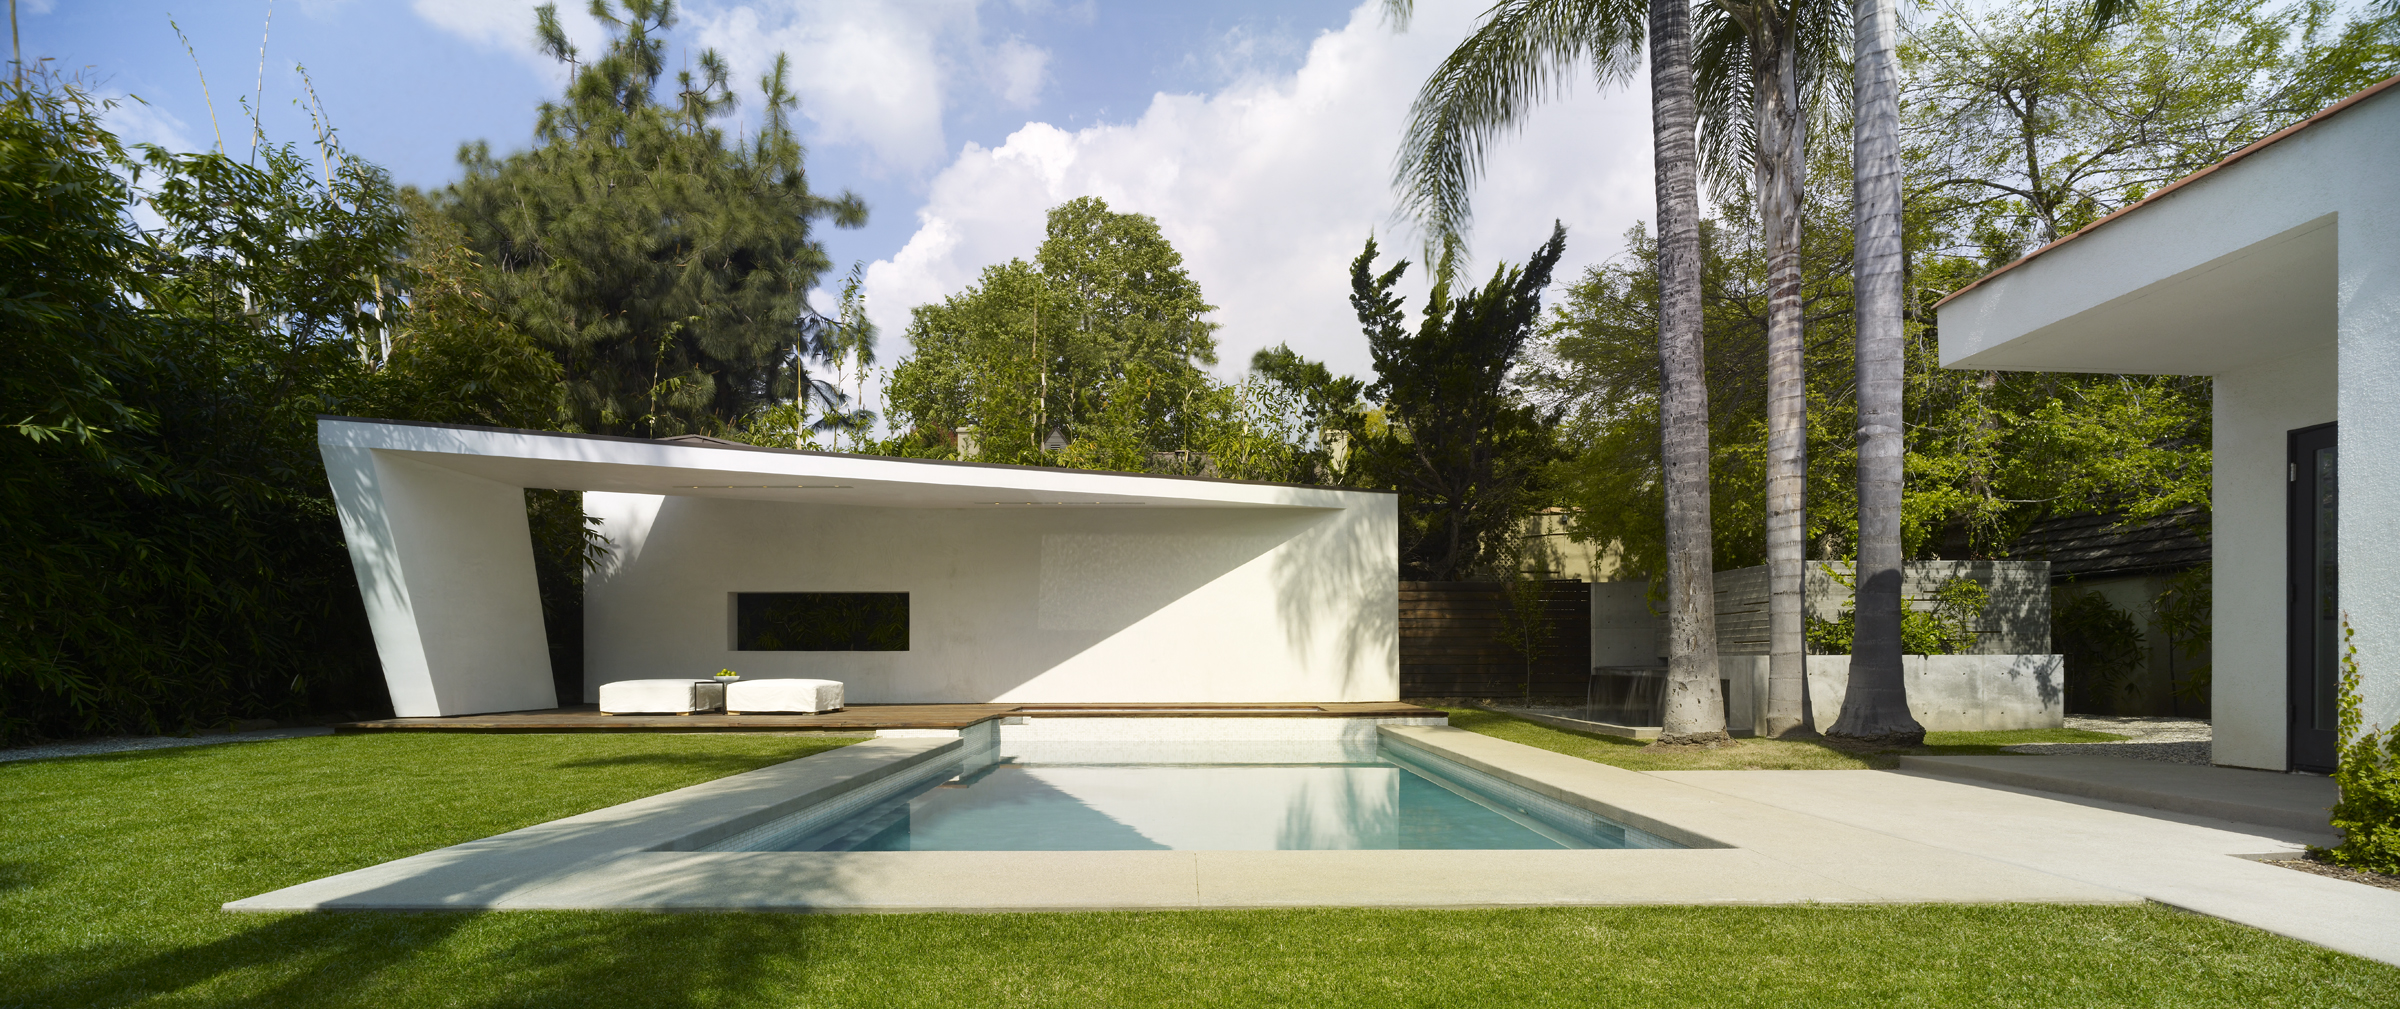 03_Pool shade structure an.jpg